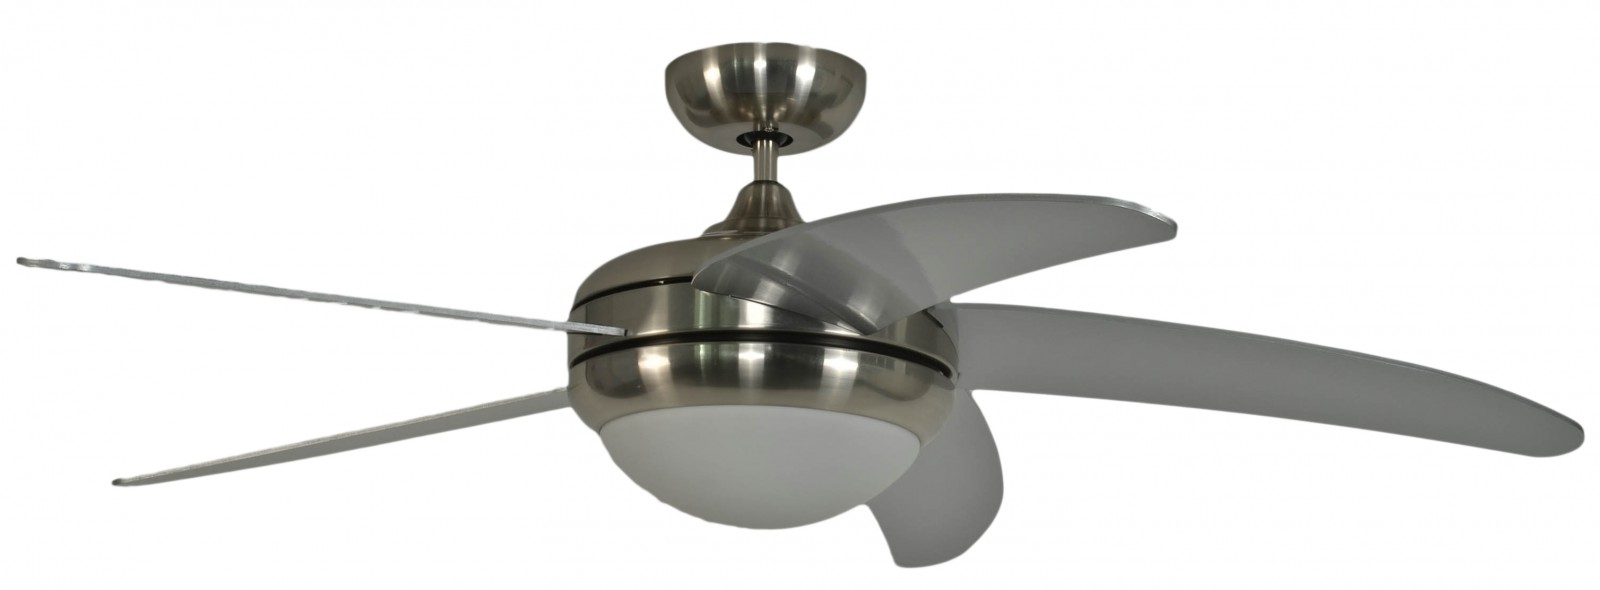 Ceiling Fan Makkura Chrome Brushed Silver Blades With Remote Wiring Hunter Light And Control